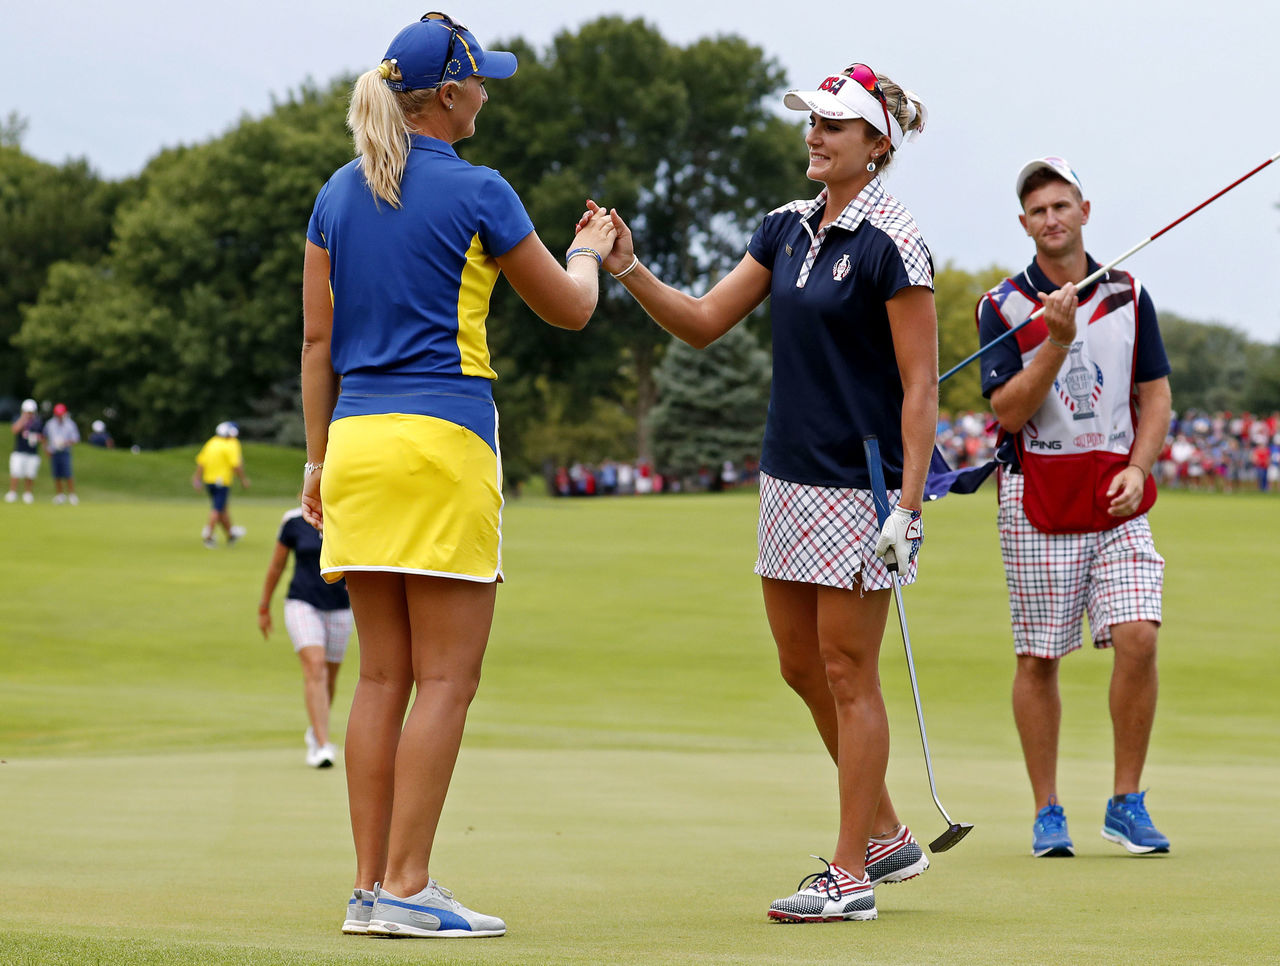 Cropped 2017 08 20t211748z 999538802 nocid rtrmadp 3 lpga the solheim cup